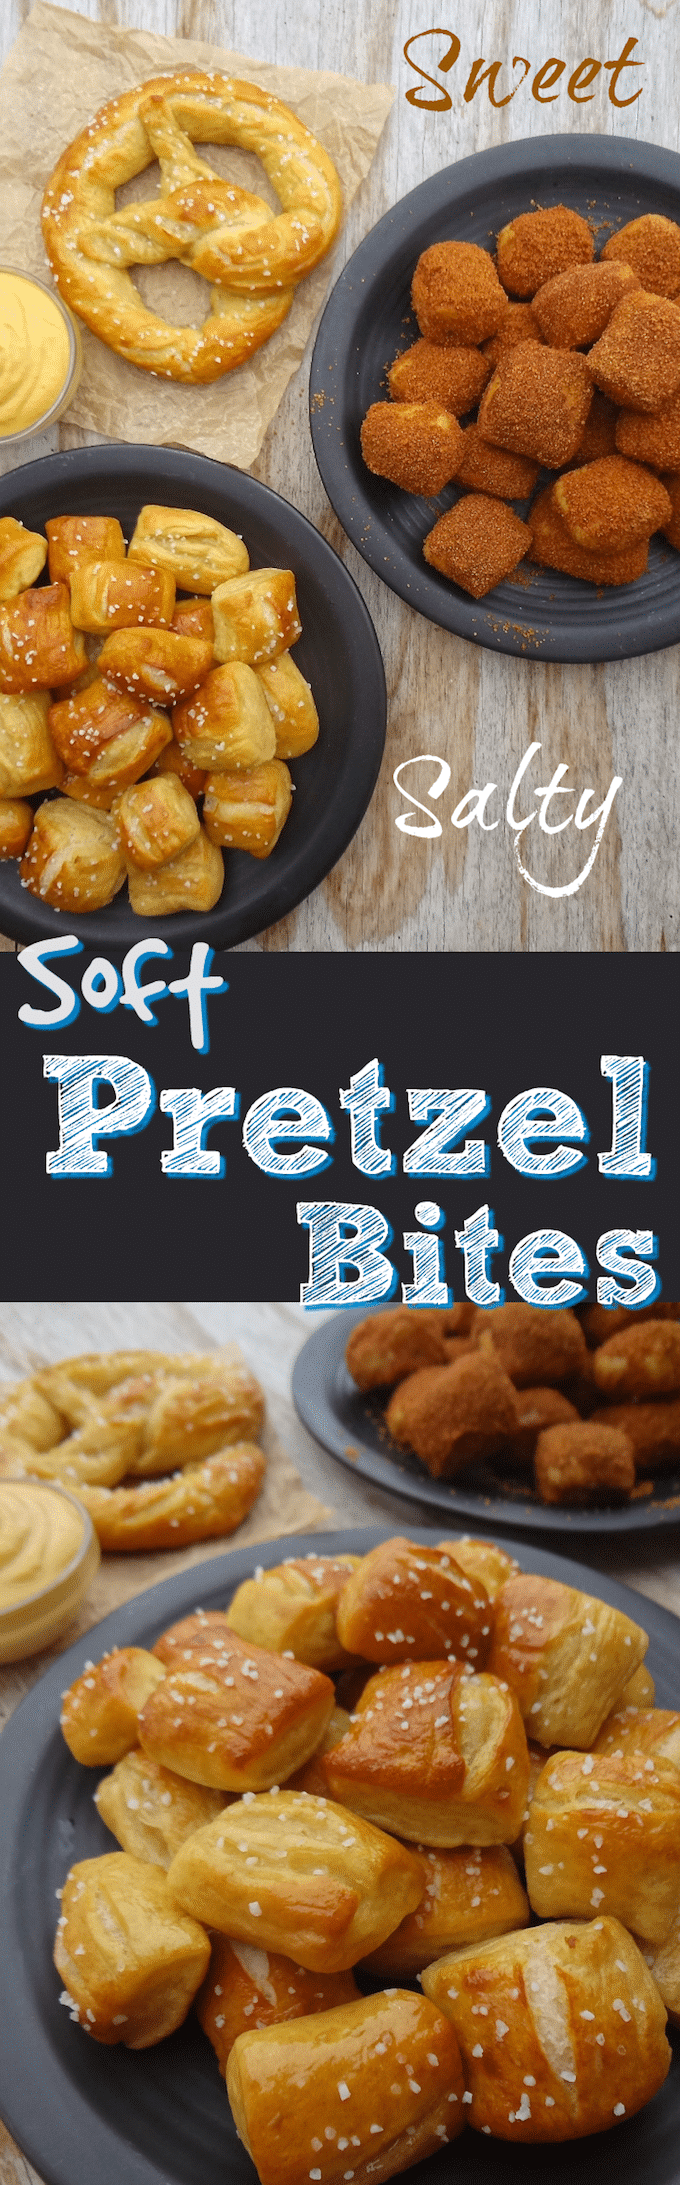 No need to choose a flavor with these, ready in about an hour, Sweet & Salty, Vegan Soft Pretzel Bites. They're also egg, dairy & refined sugar free! Simple and easy to make, kid-friendly, party food that will satisfy you and your guests sweet & salty craving! #vegansnack #veganrecipes #veganpartyfood #fingerfoods #veganpretzels #vegan